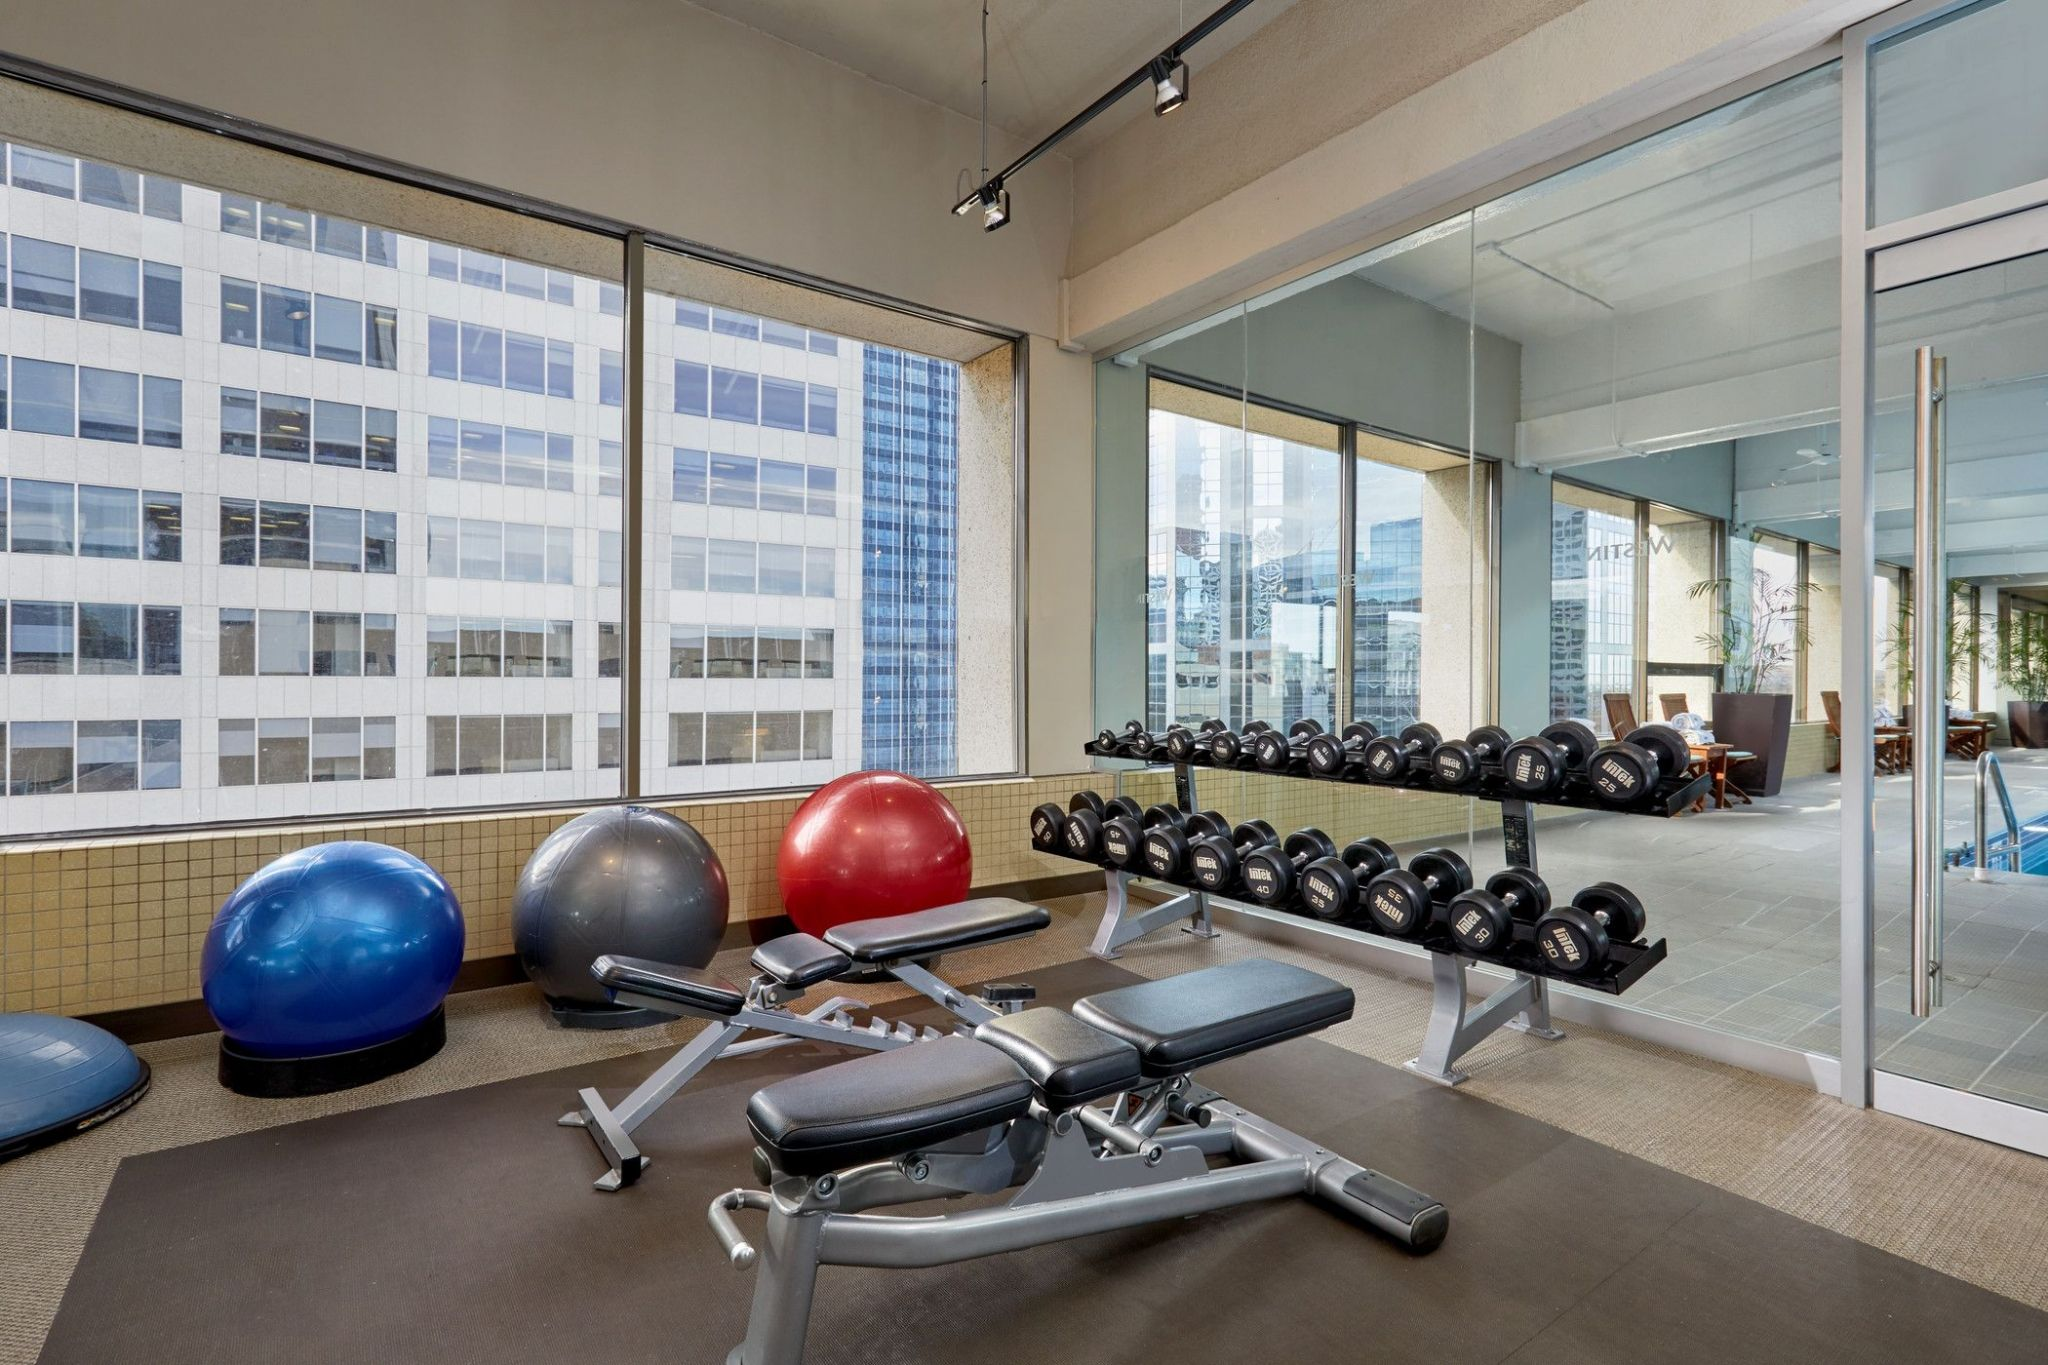 Calgary Hotel Accommodation - Fitness Center